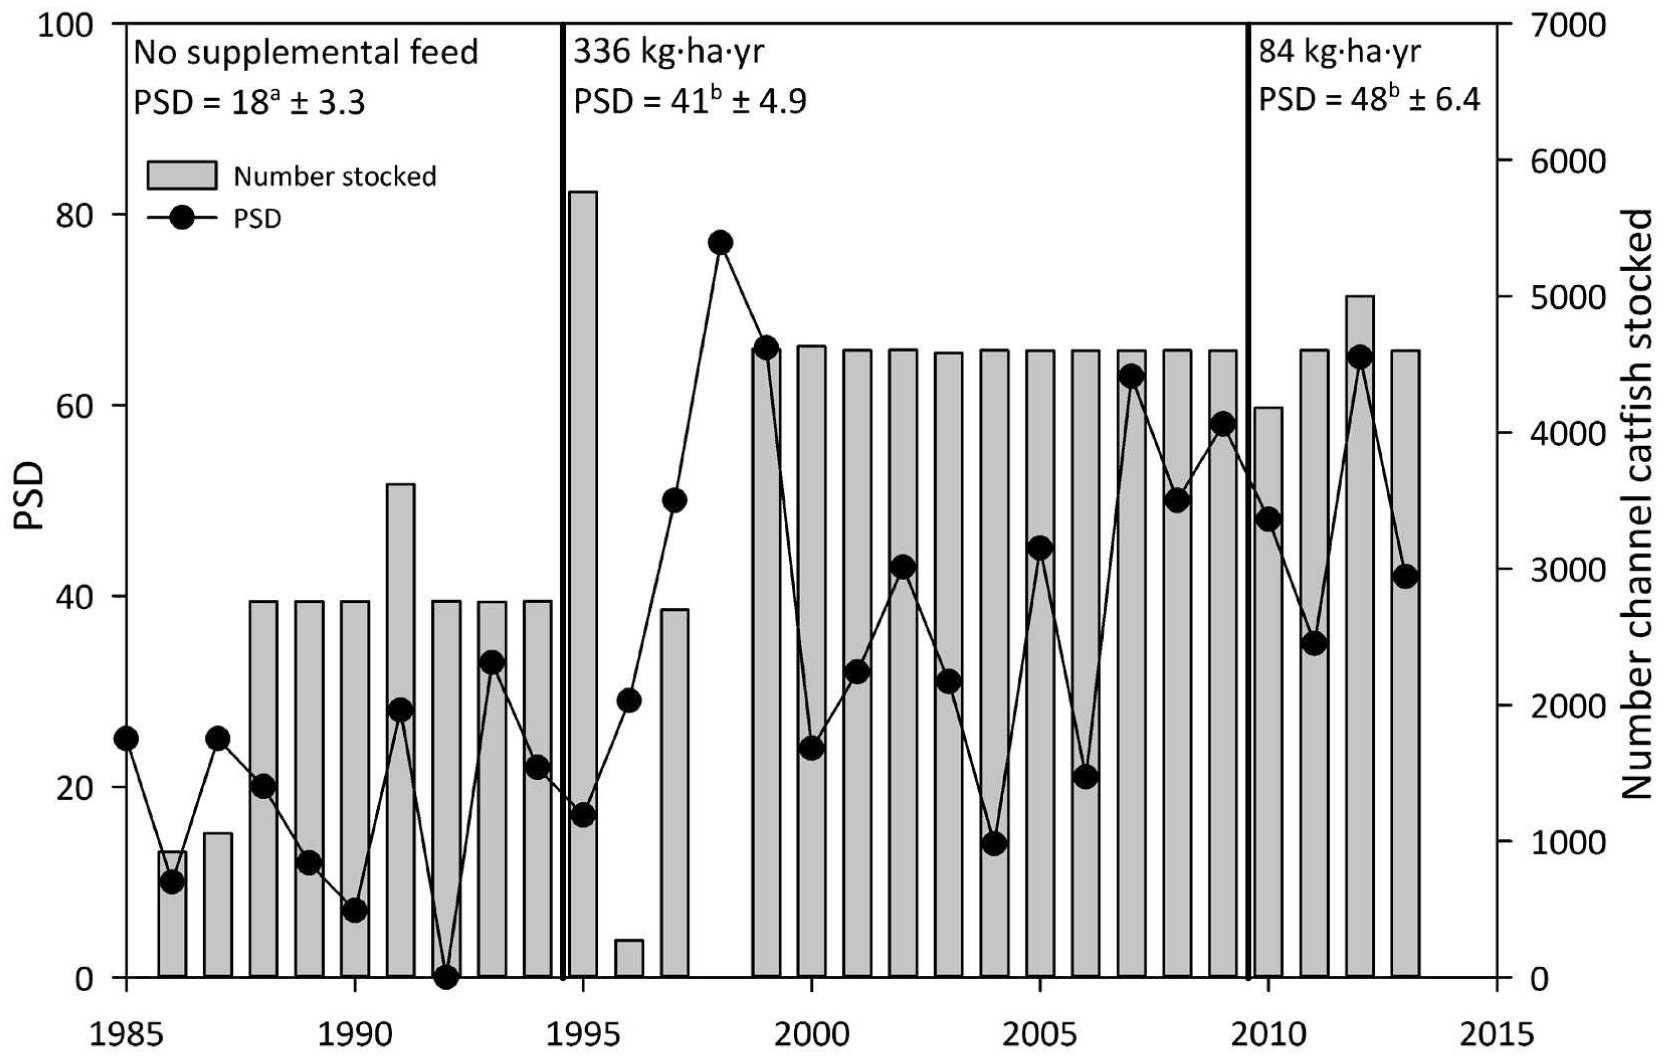 Influence of Supplemental Feeding on the Channel Catfish